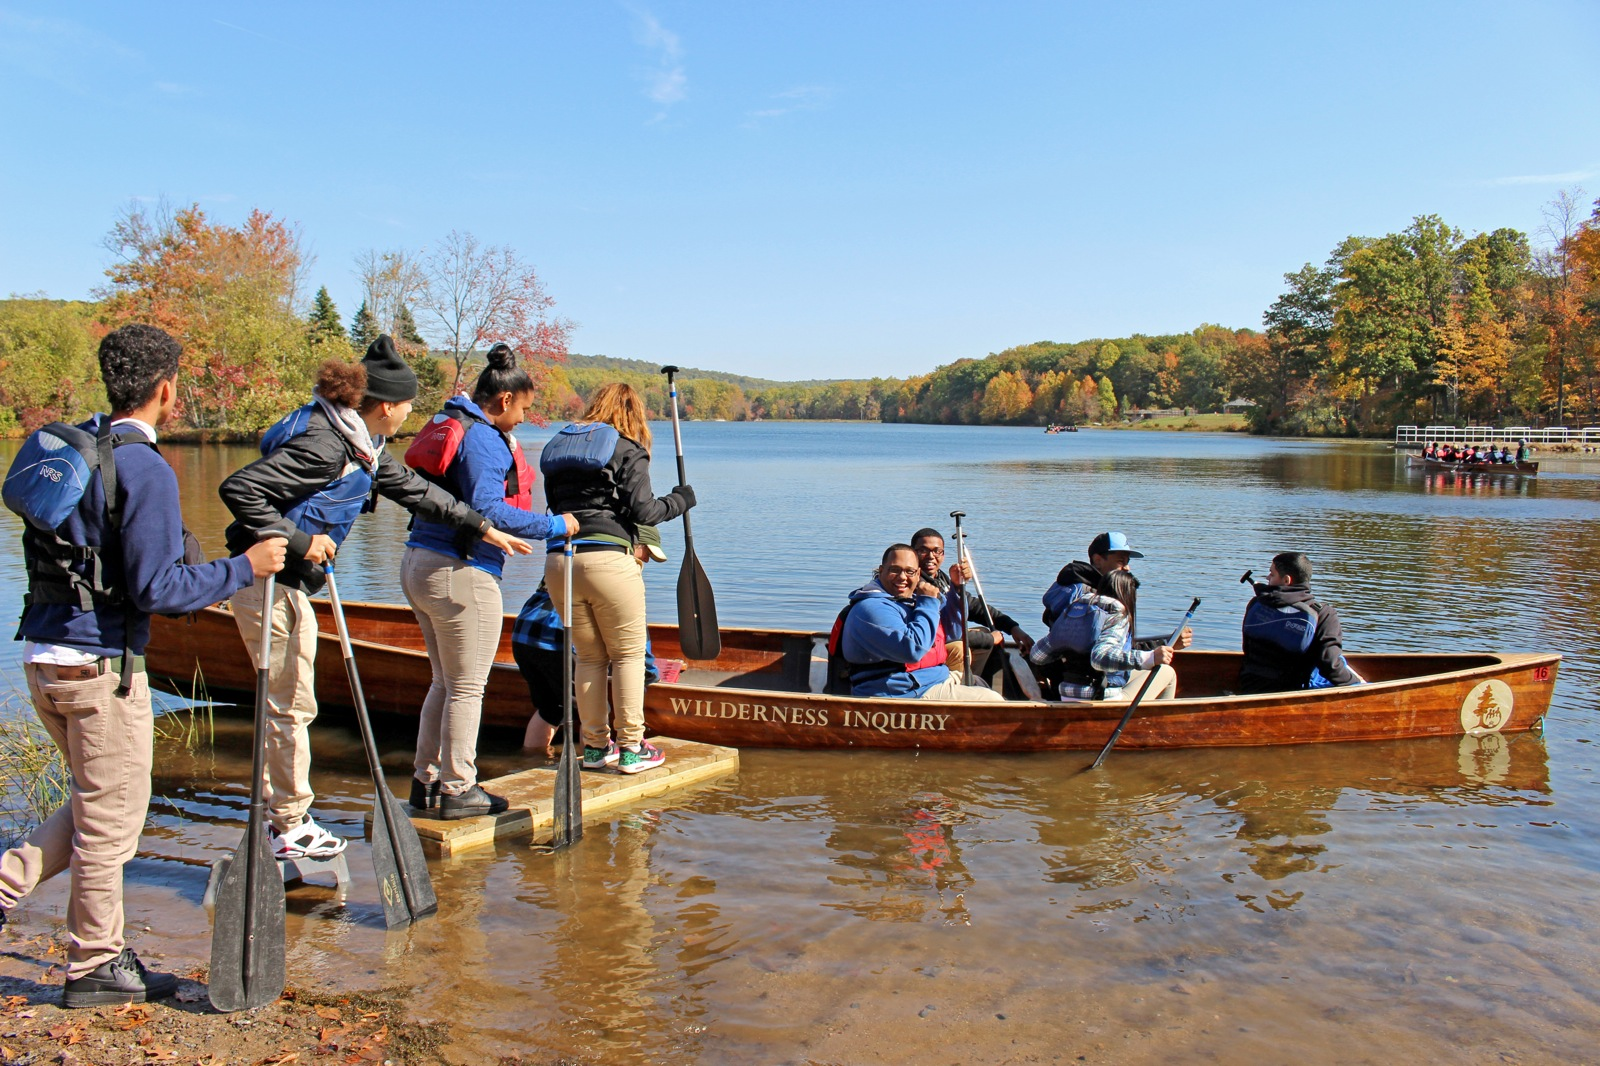 Participants load into the canoe on a sunny day